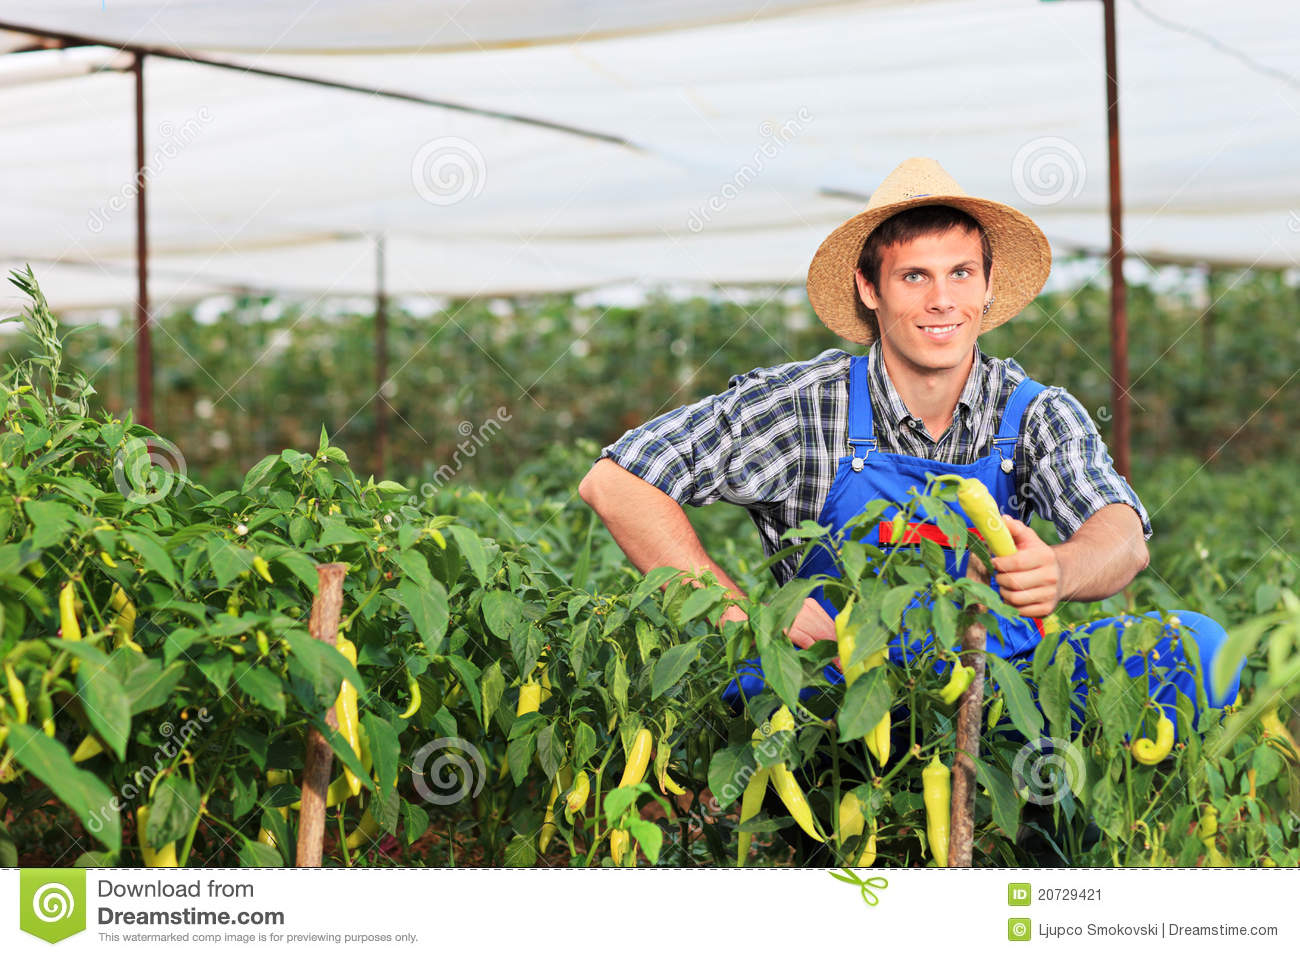 A Smiling Gardener Picking Peppers In A Garden Stock Image